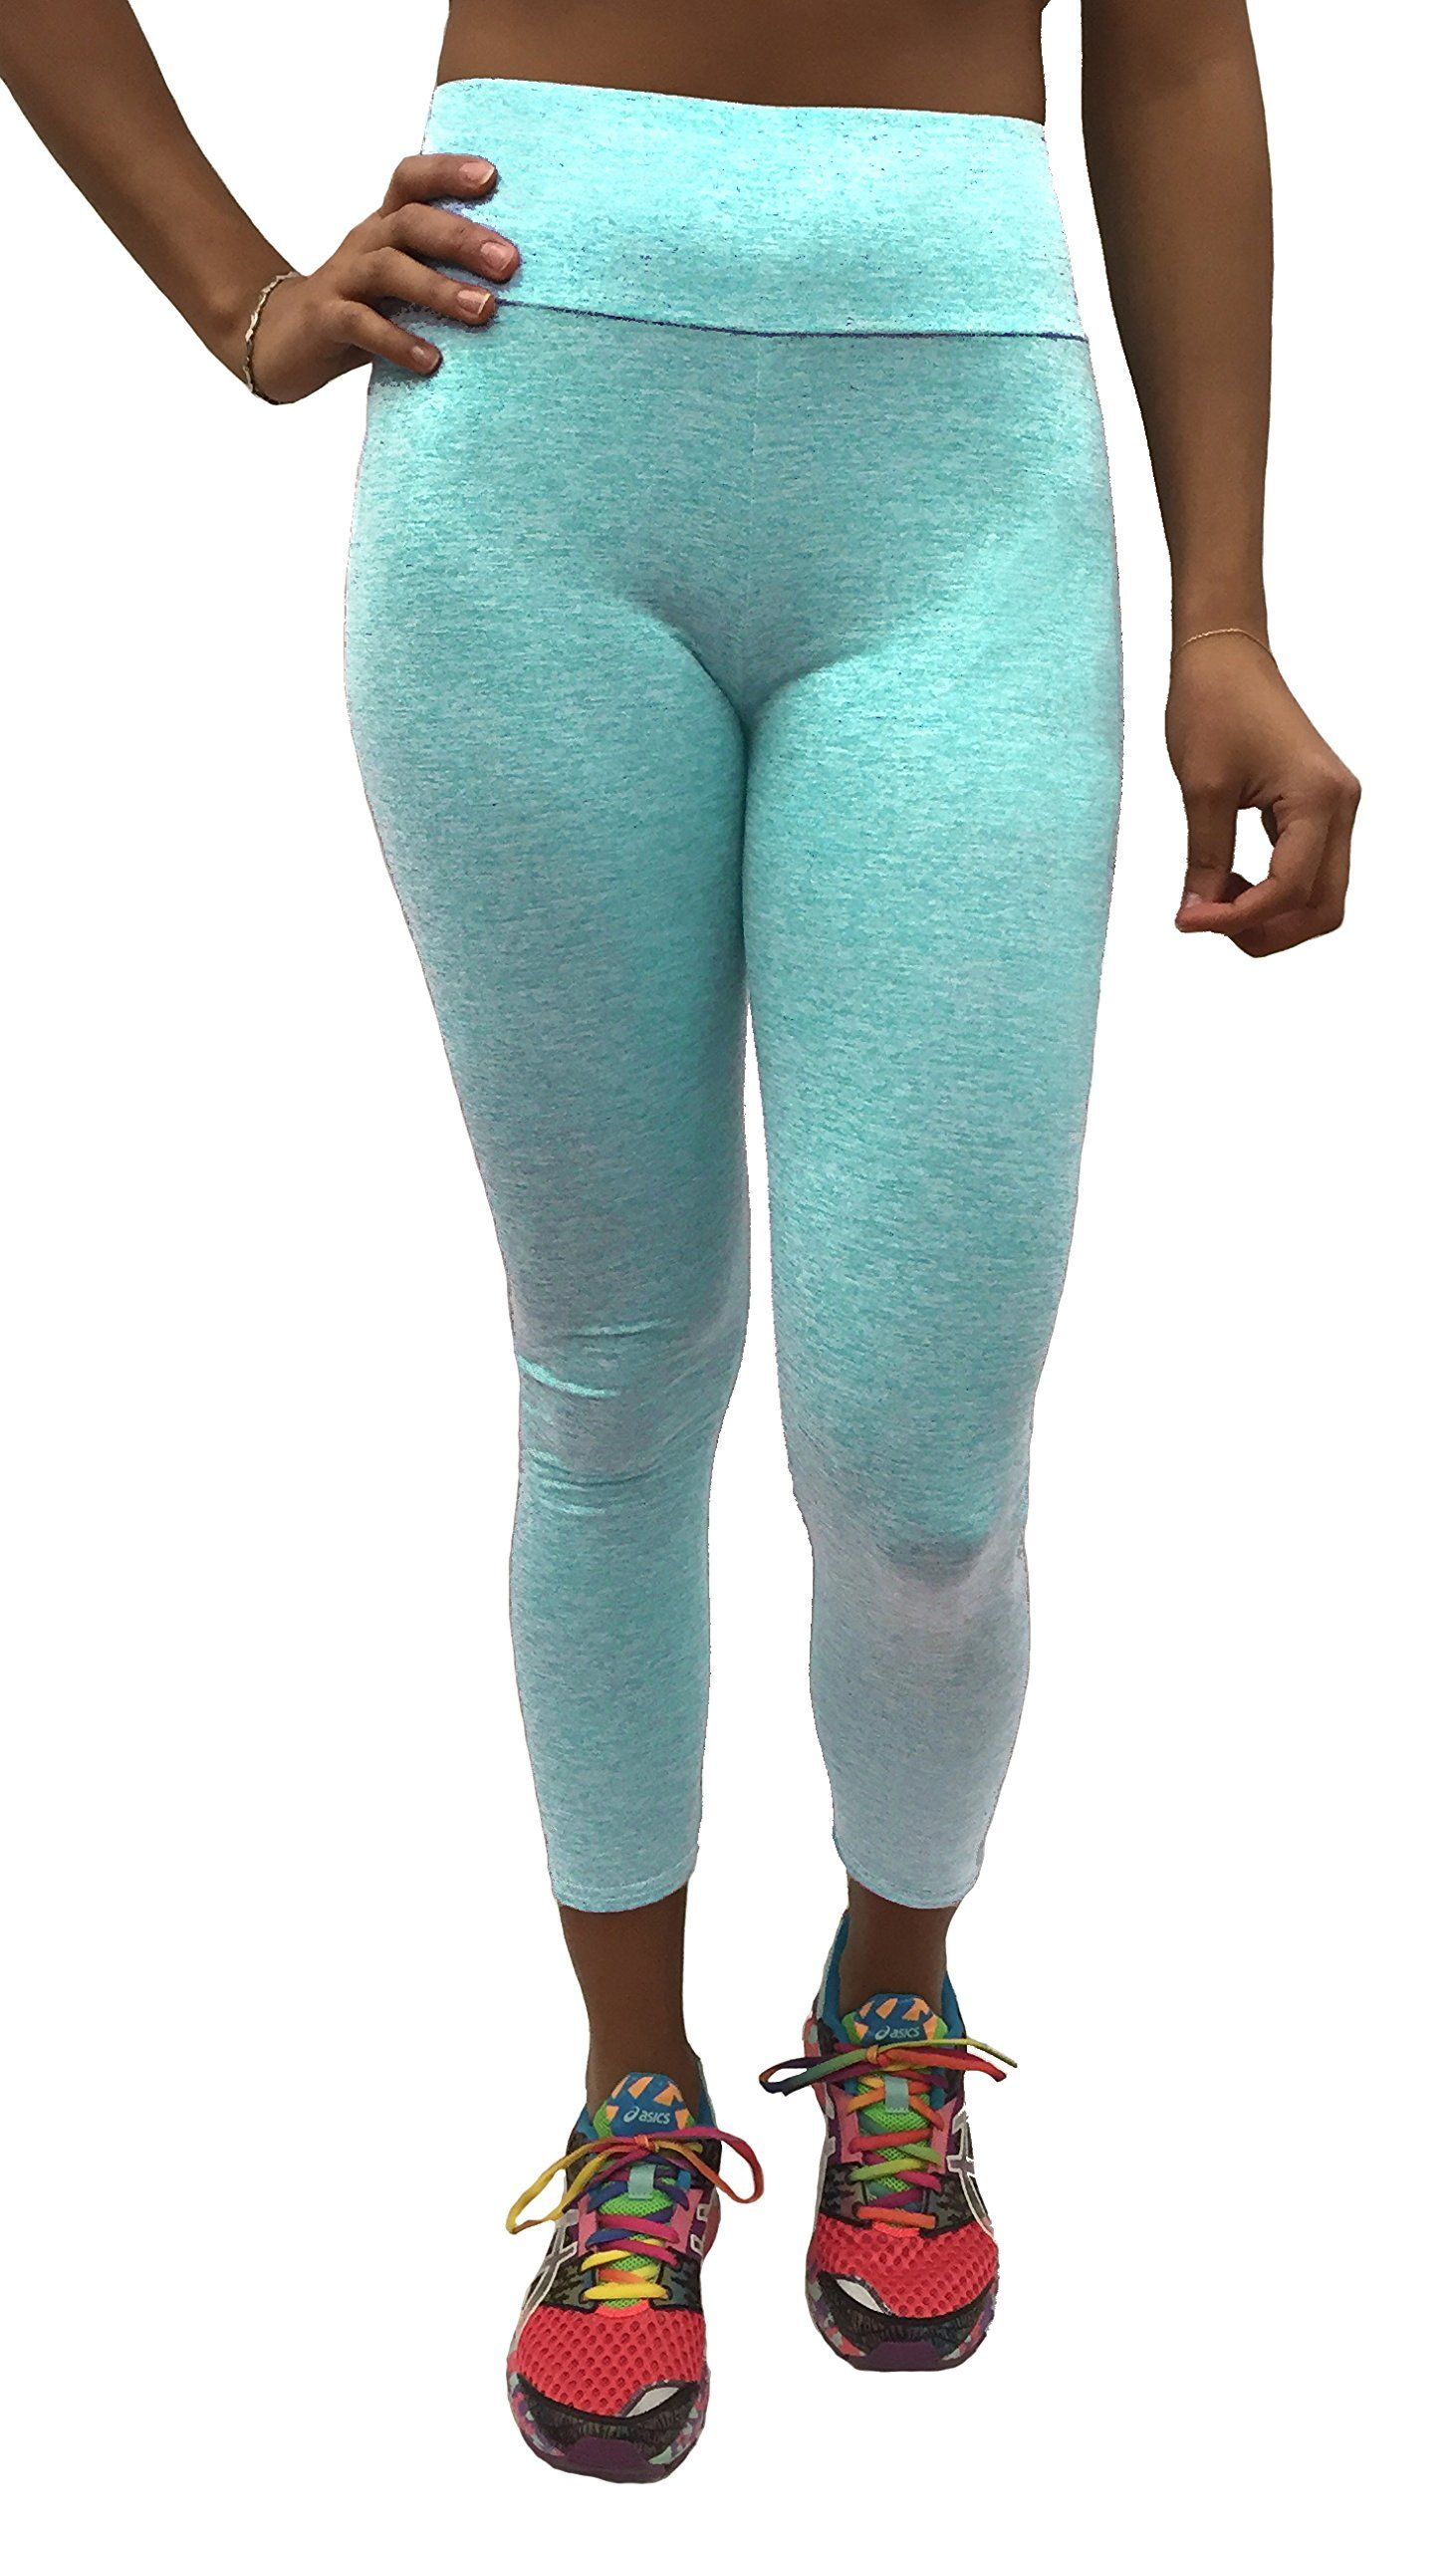 b6a670a688d42 Stay Dry Basics Easy Fit Active Yoga Leggings Aqua Marine XL *** Read more  at the image link. (This is an affiliate link)